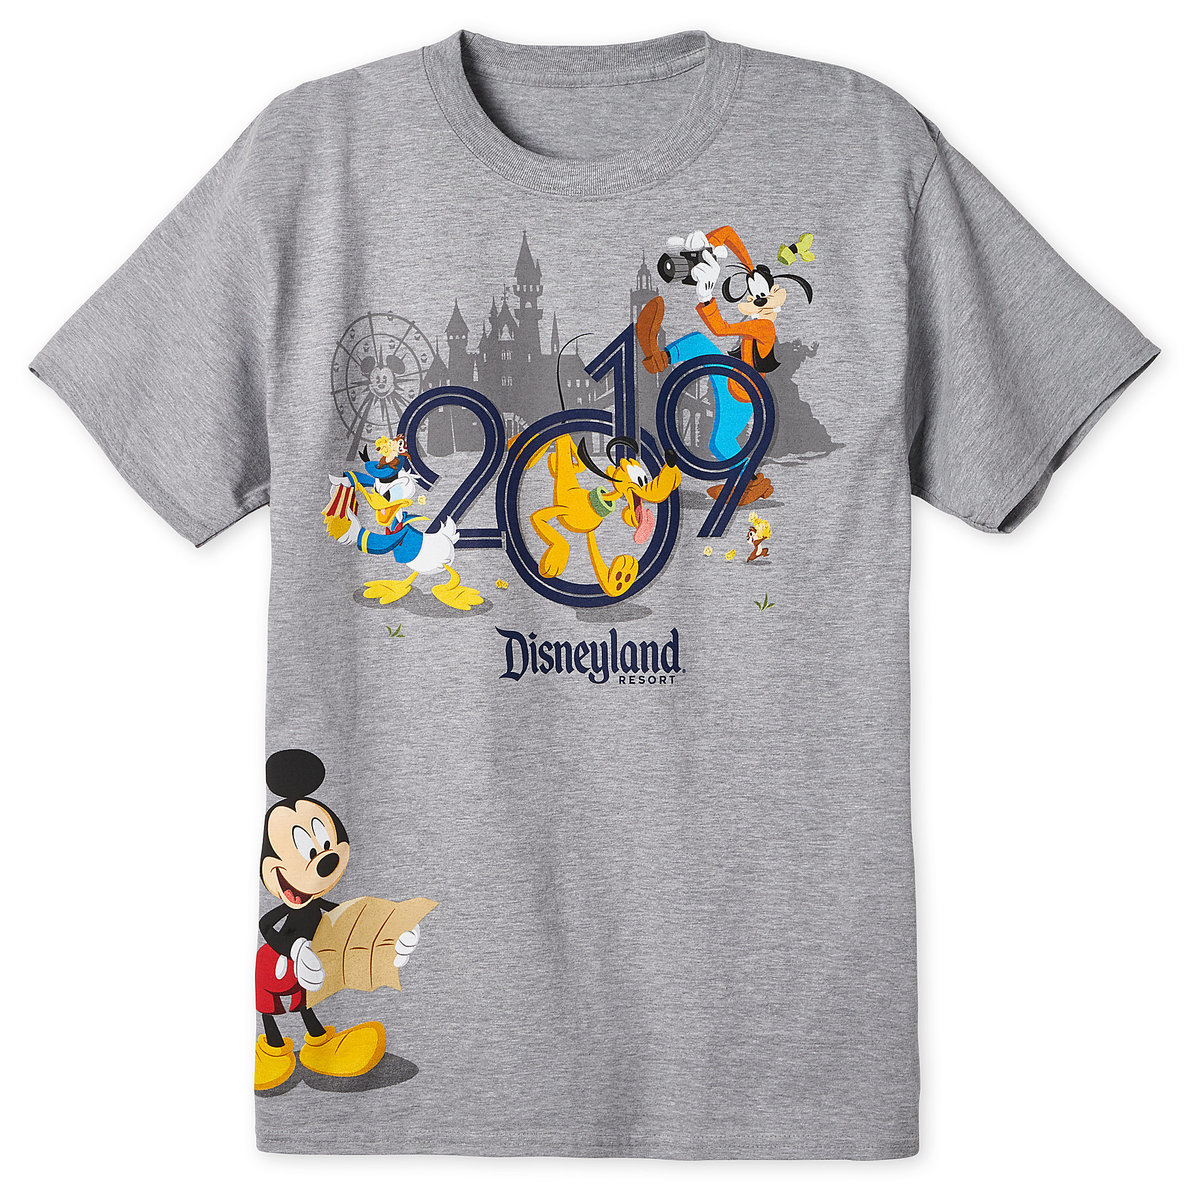 e537230aba44b Product Image of Mickey Mouse and Friends T-Shirt for Adults - Disneyland  2019 #